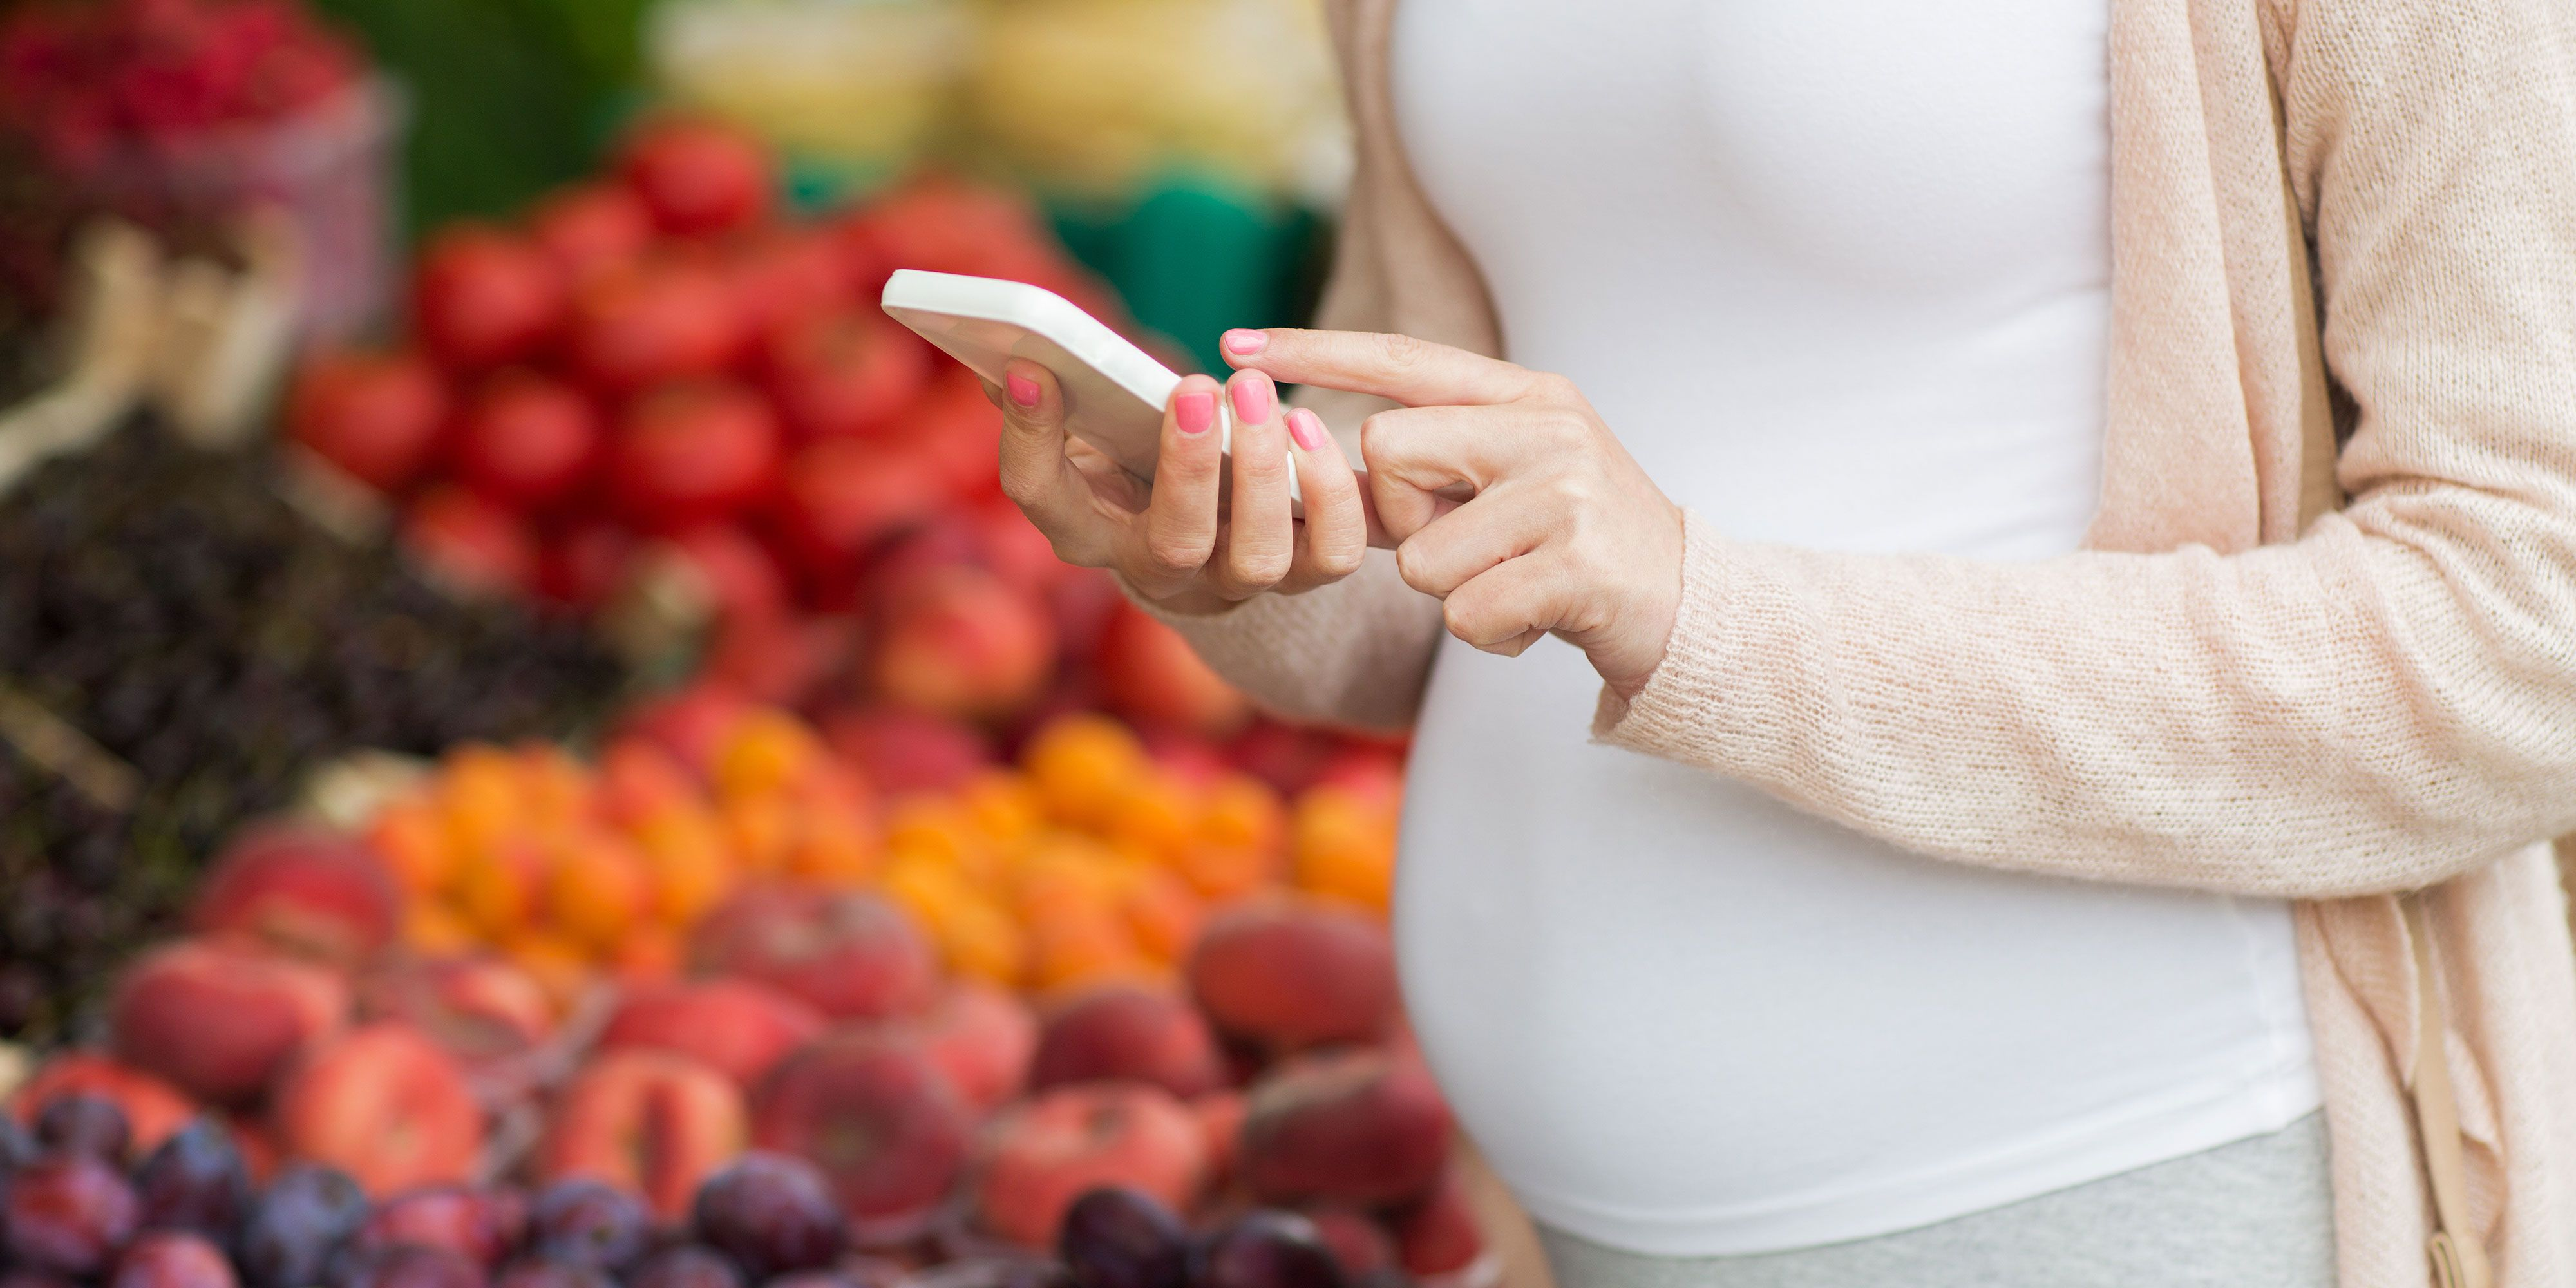 15 Pregnancy Apps - Best Pregnancy Apps